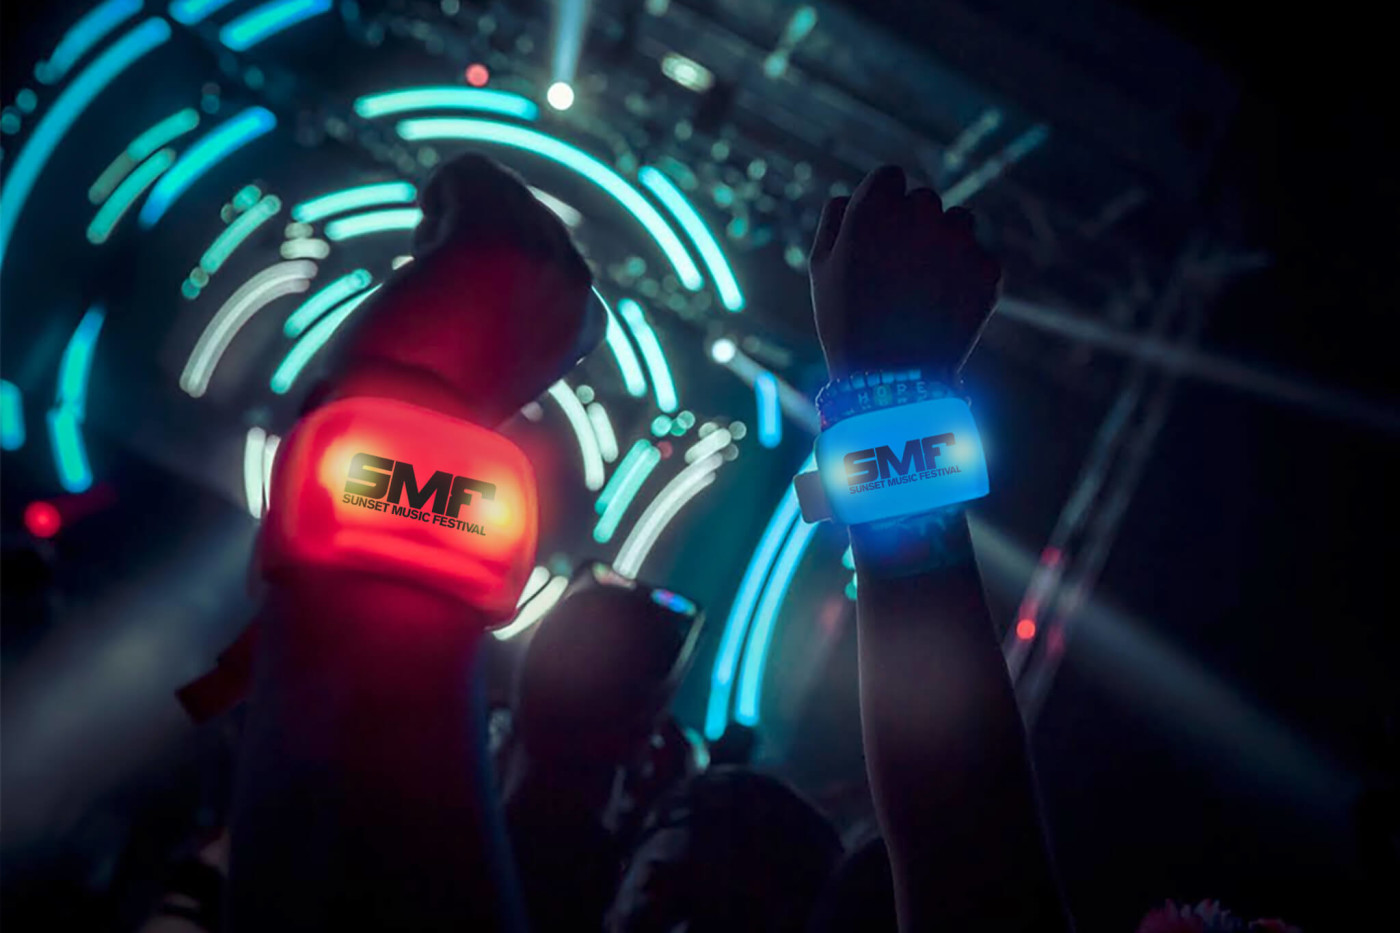 Glow Motion Wristbands at Sunset Music Festival